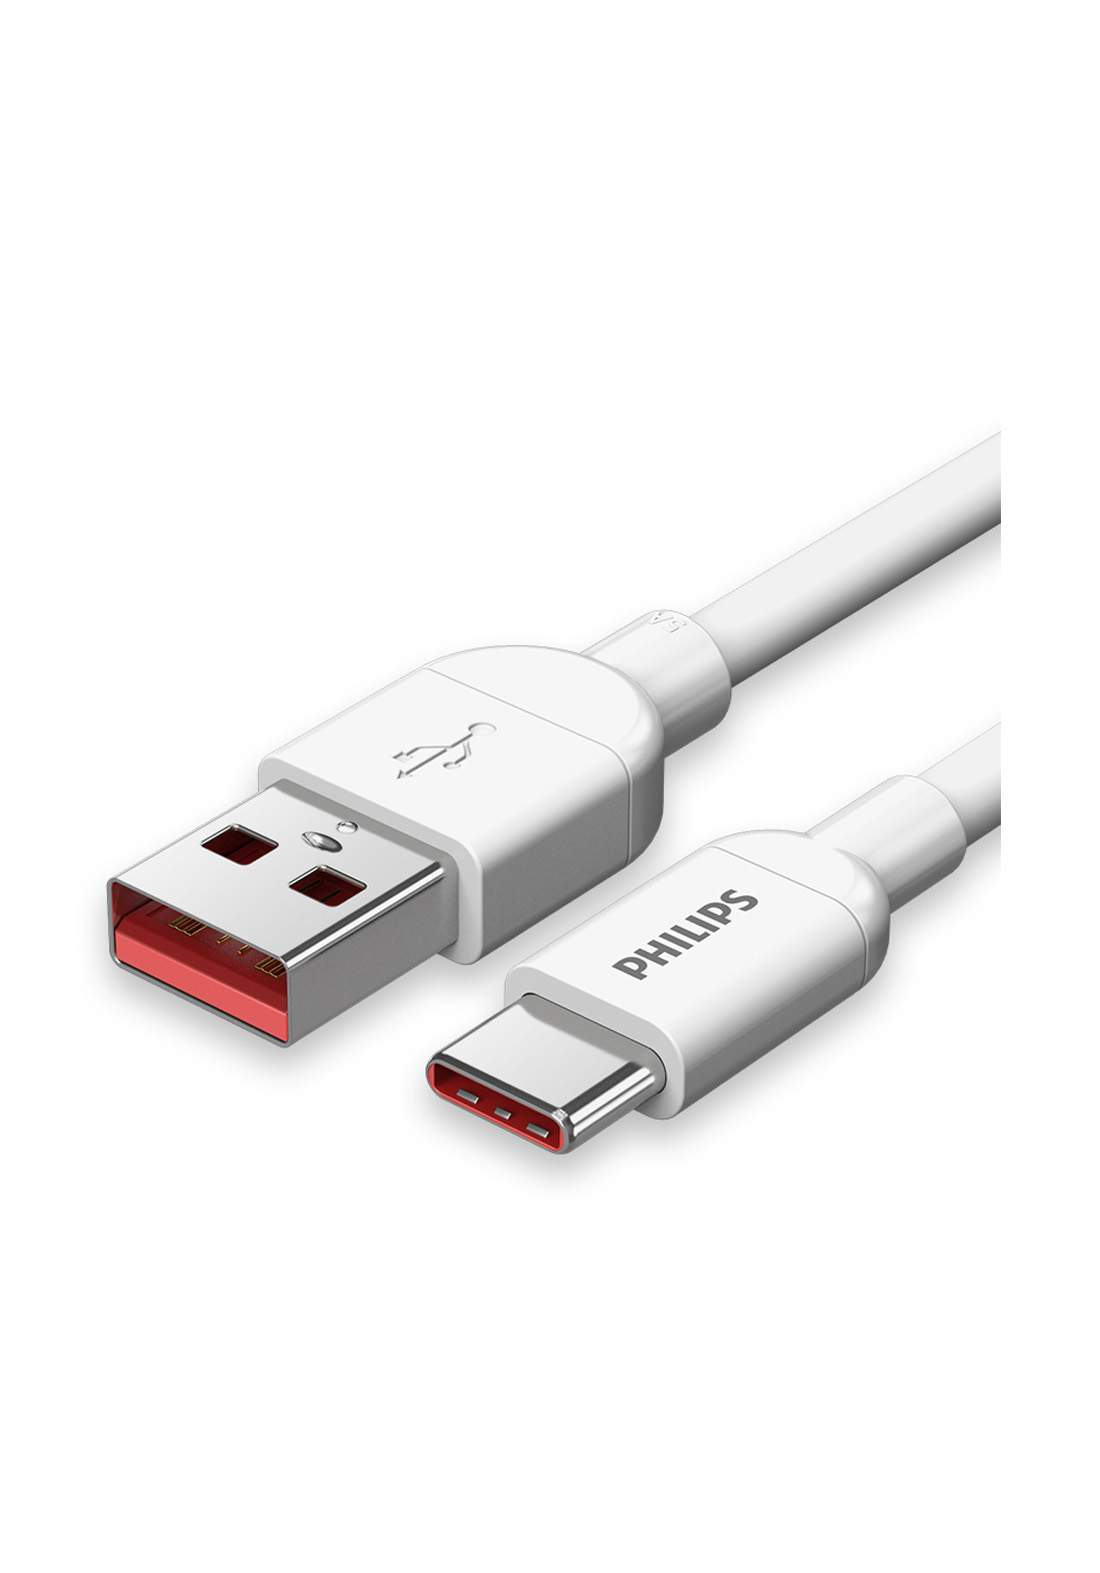 Philips SWR1612A/93 Type-C Data Cable 5A Super Fast charging Cable For phones - White كابل